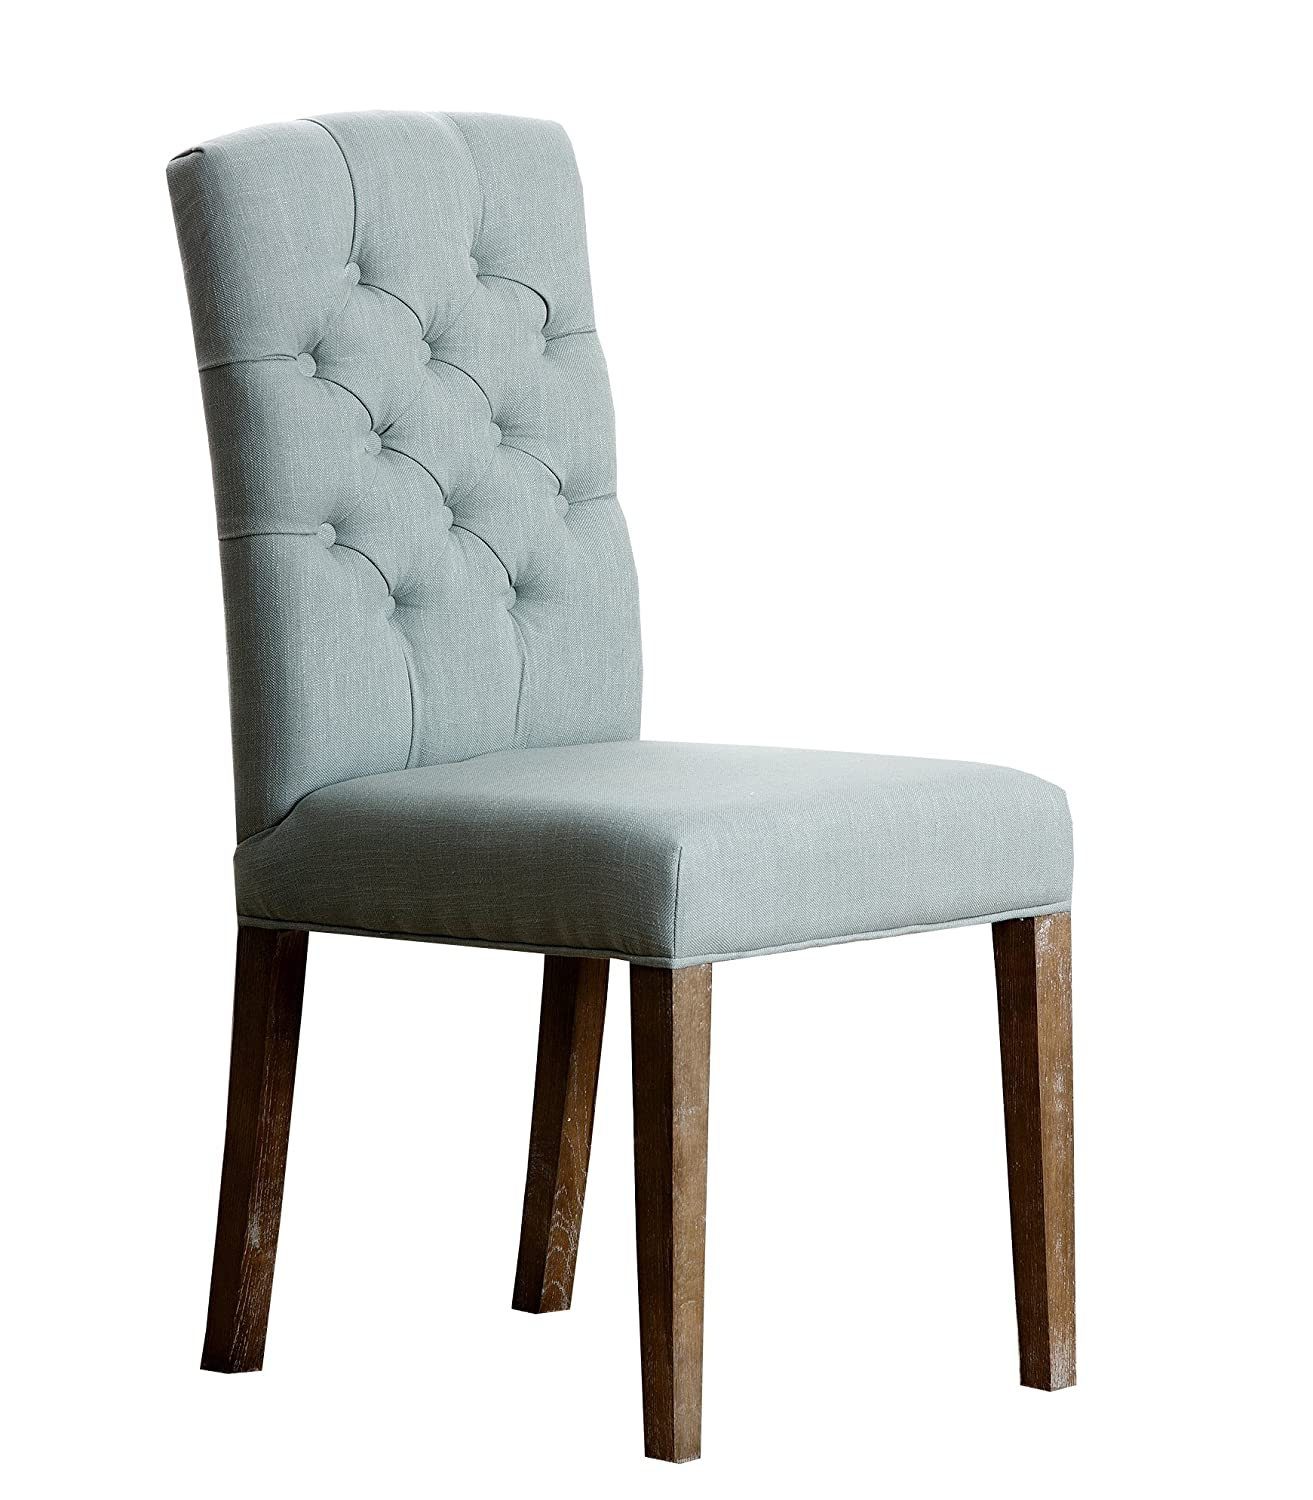 240 & Abbyson Princeton Linen Tufted Dining Chair Blue